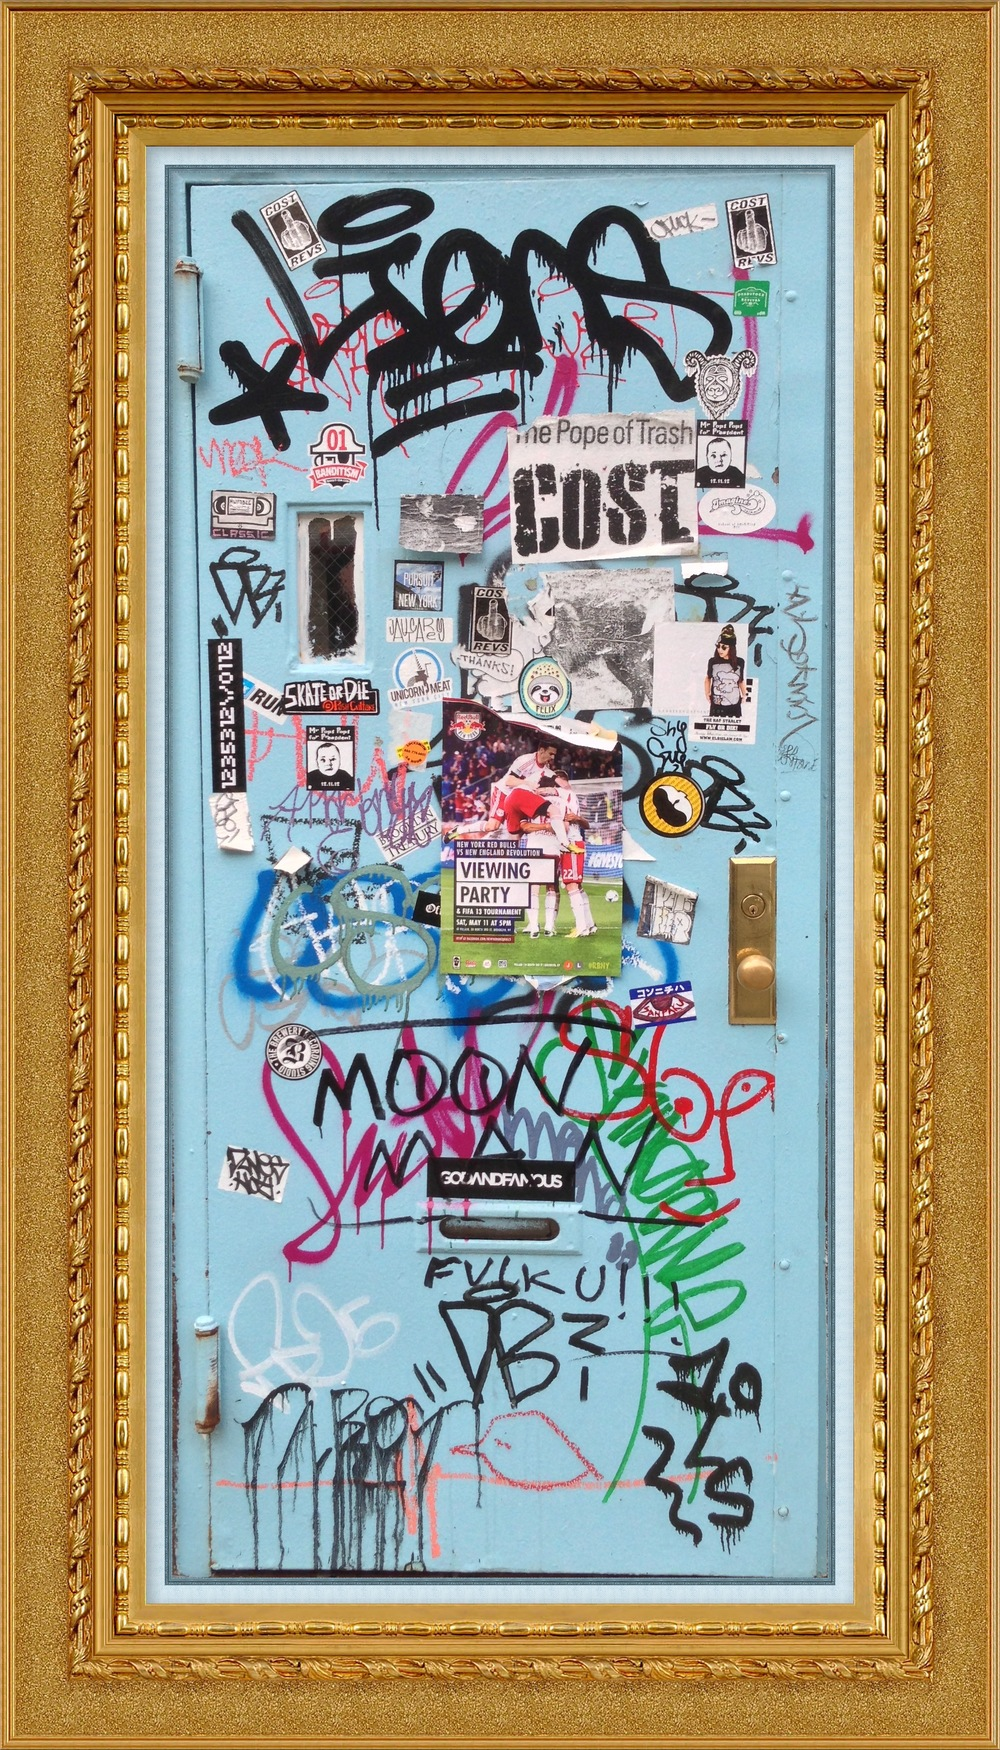 MASTERPIECE_DOOR_North 7th Street.jpg